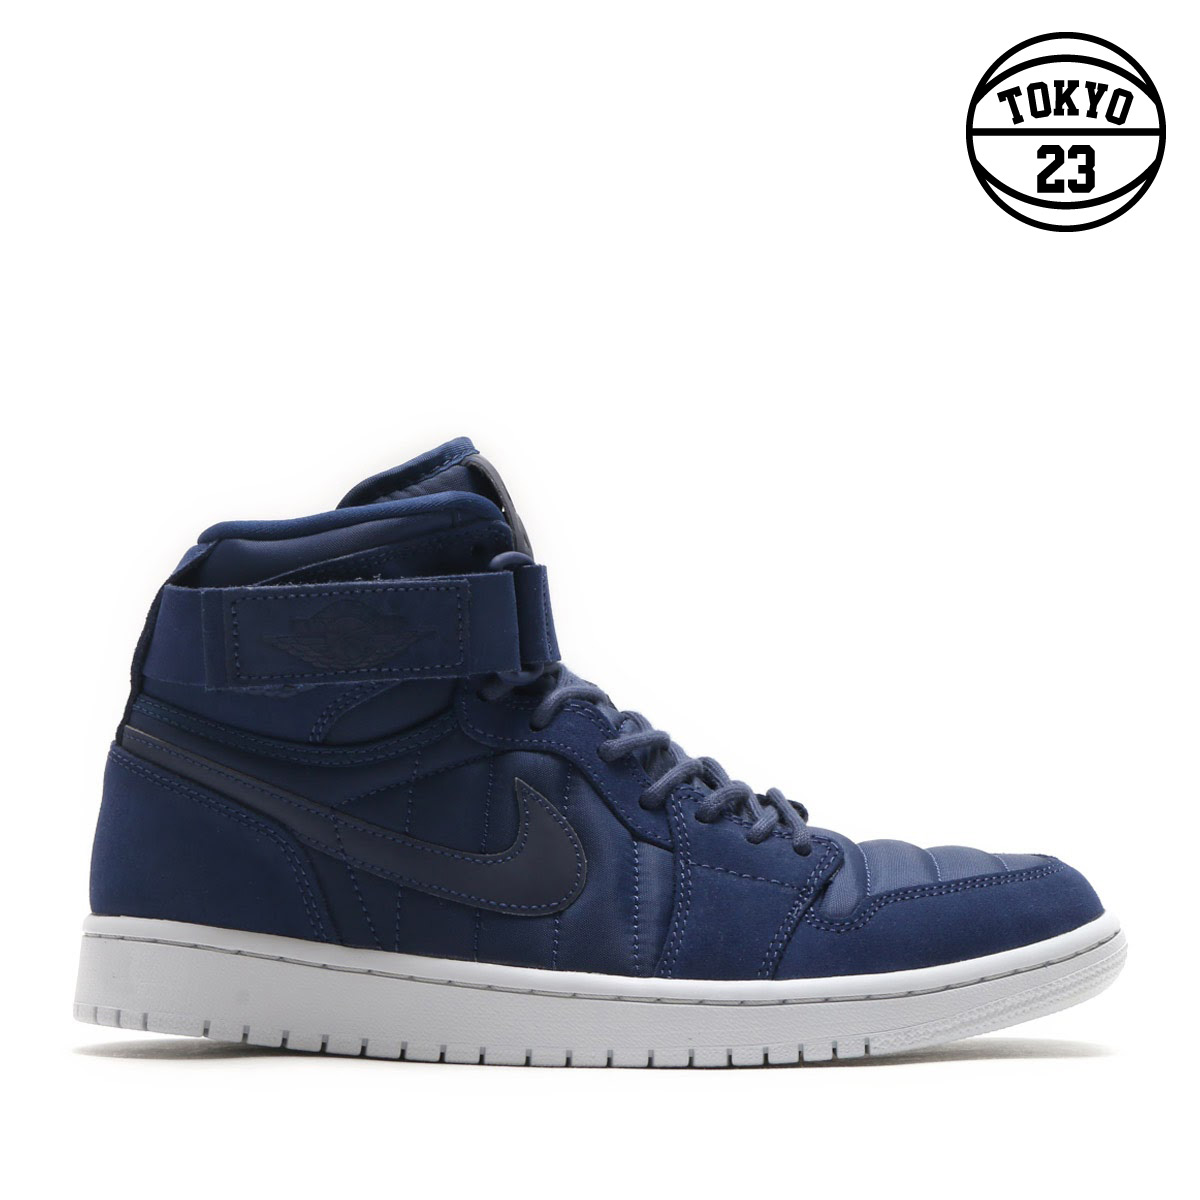 2ffd7aaac2e NIKE AIR JORDAN 1 HIGH STRAP (Nike Air Jordan 1 Heiss trap) (MIDNIGHT  NAVY MIDNIGHT NAVY)